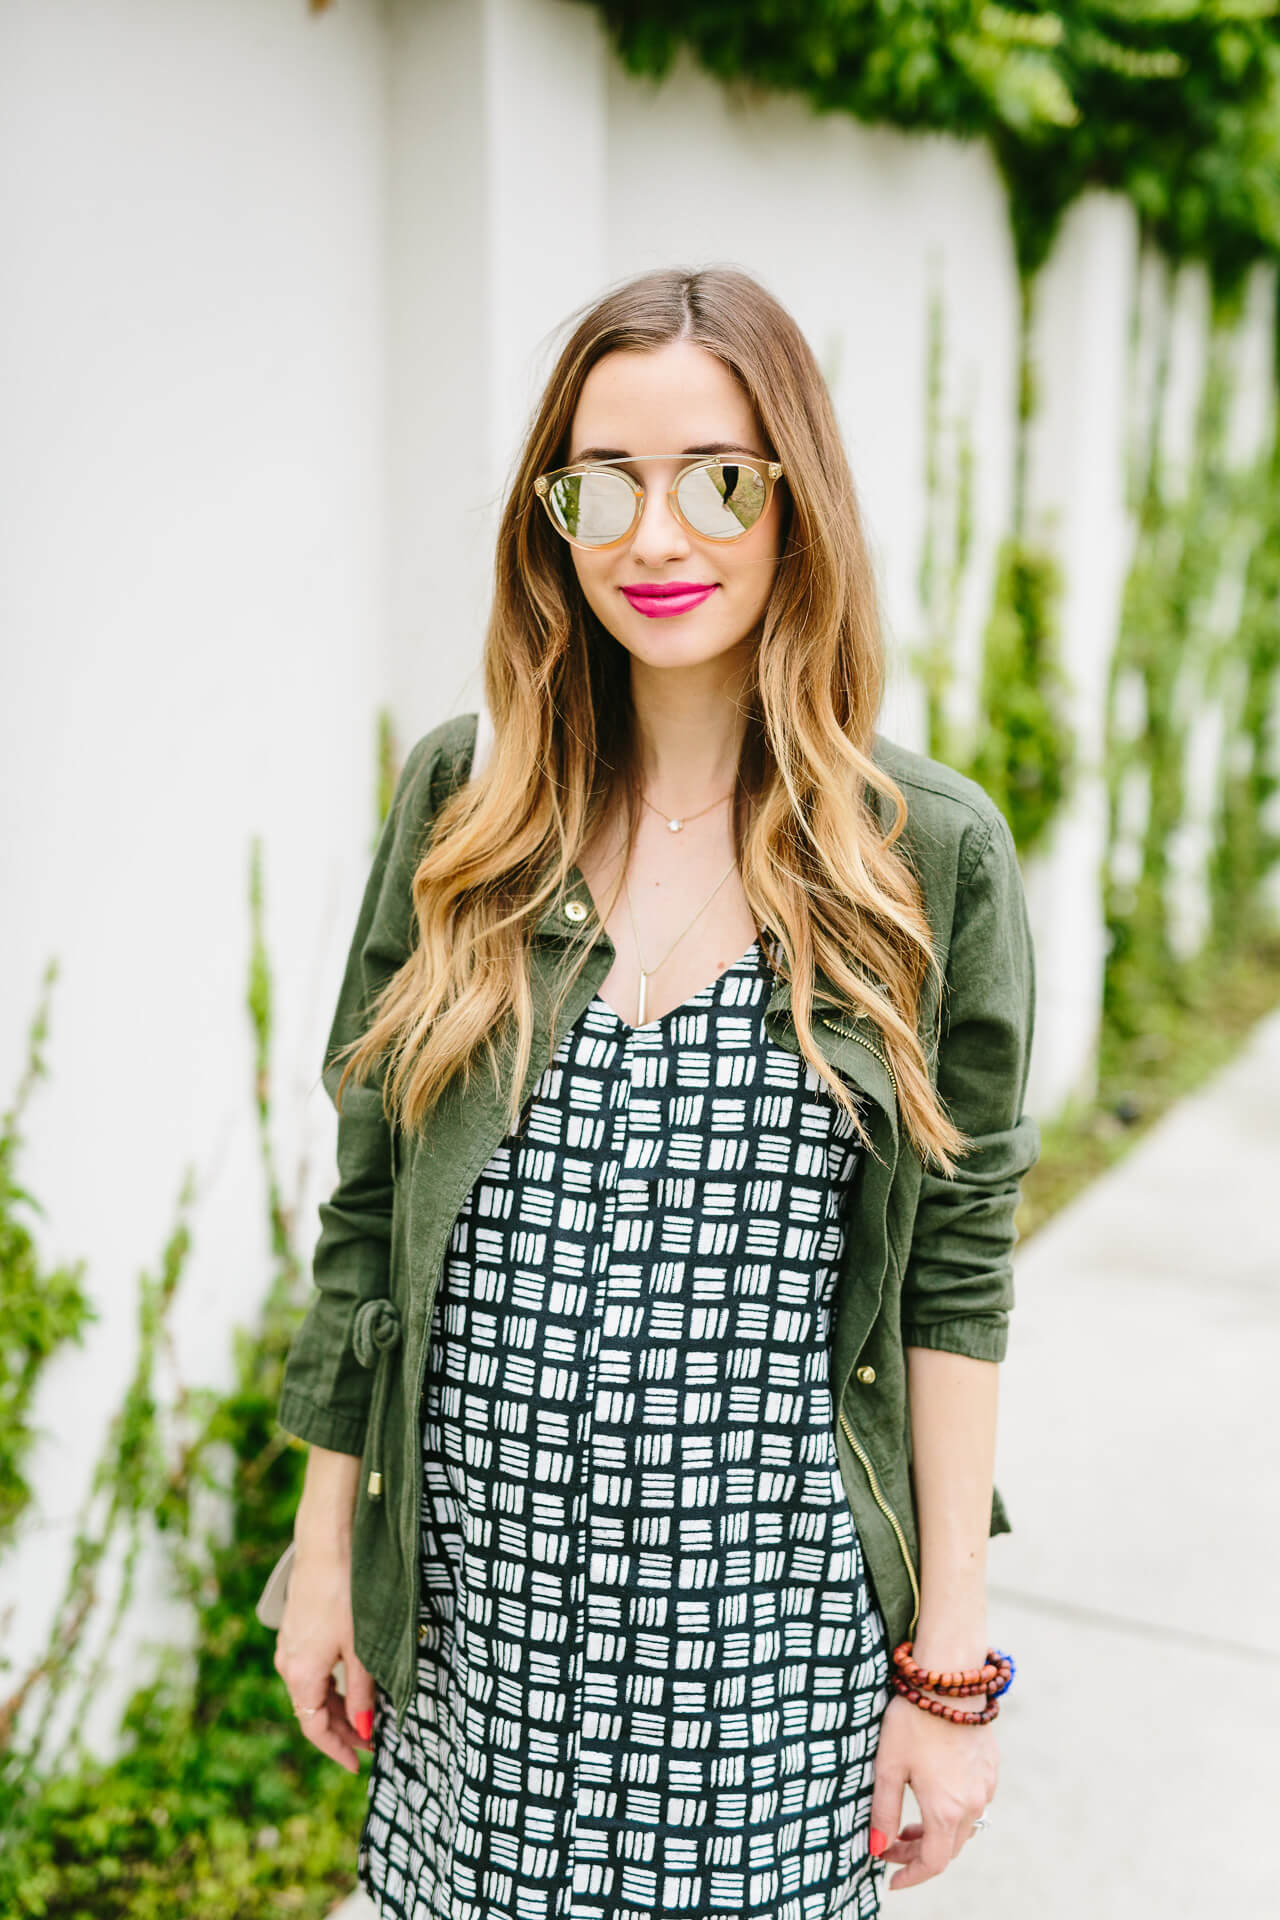 styling a black and white printed dress